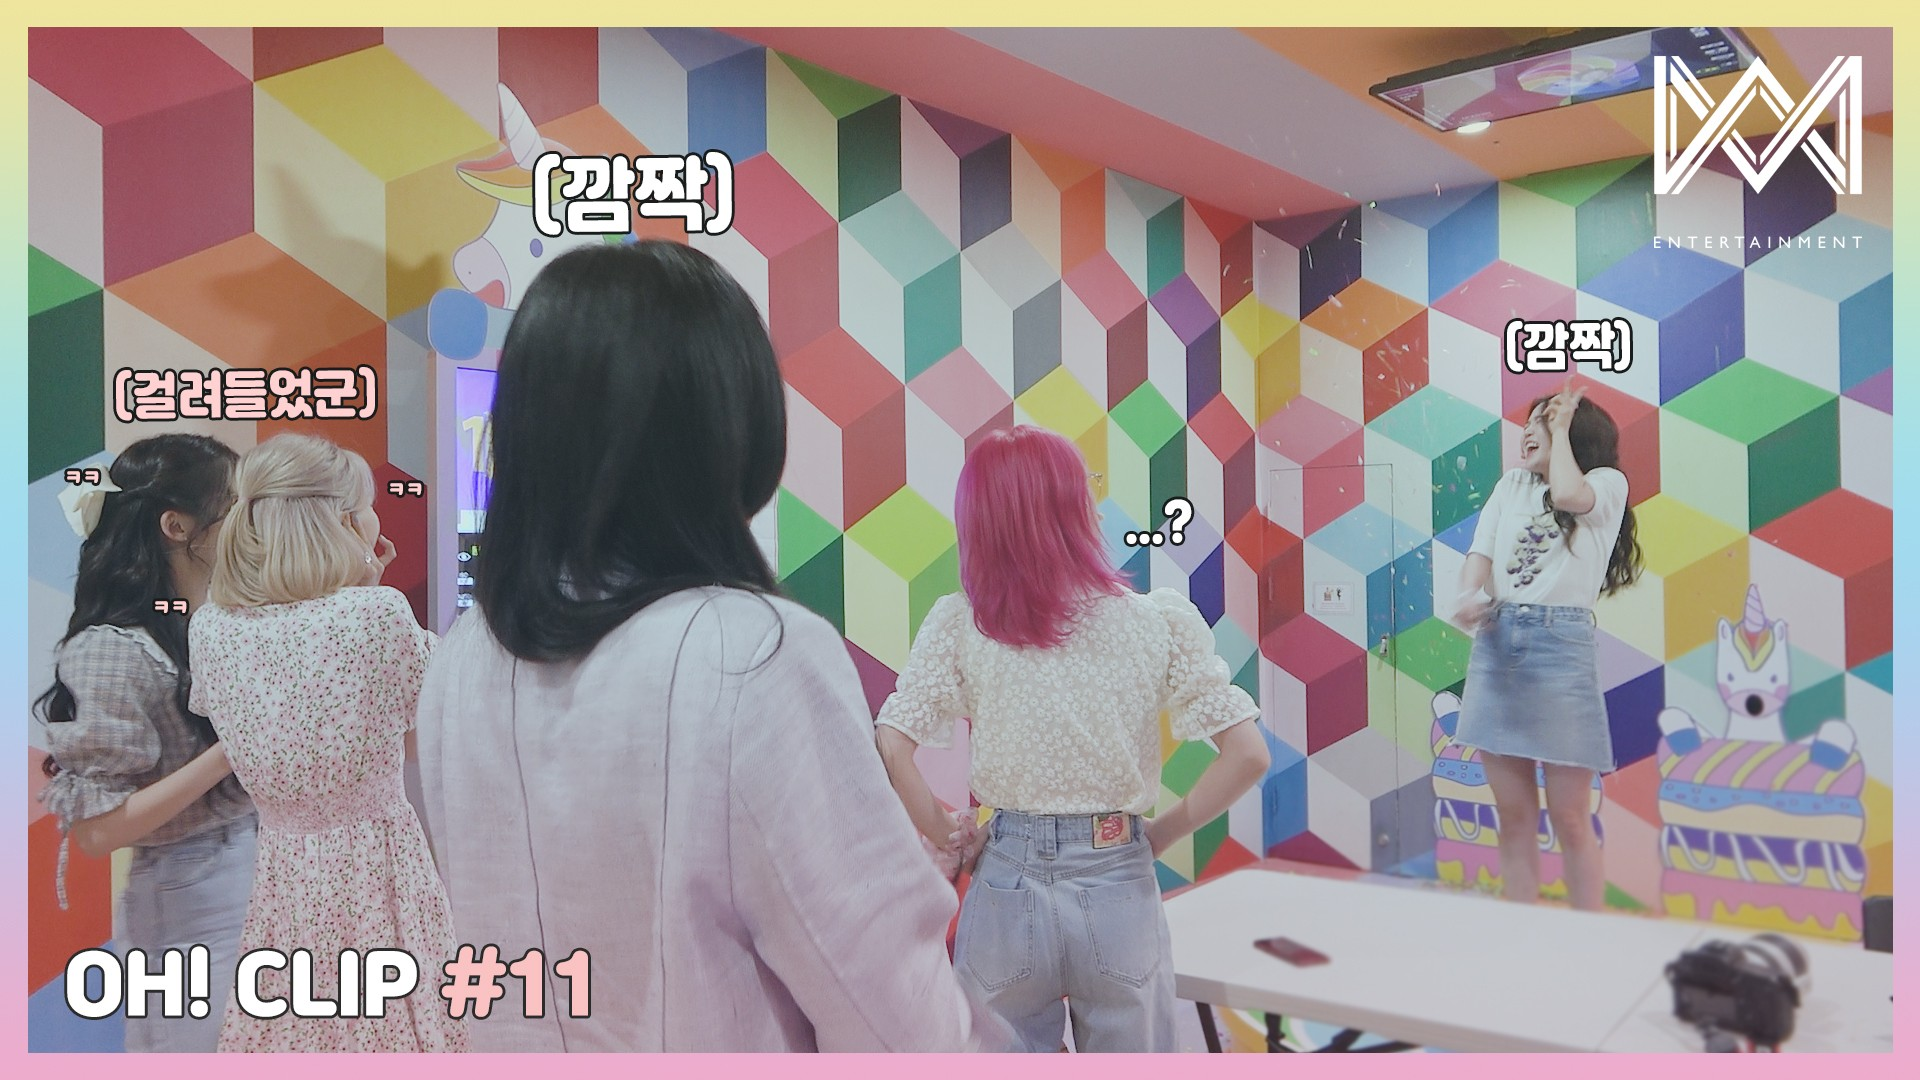 [OH! CLIP] #11 타깃은 쩡이언니